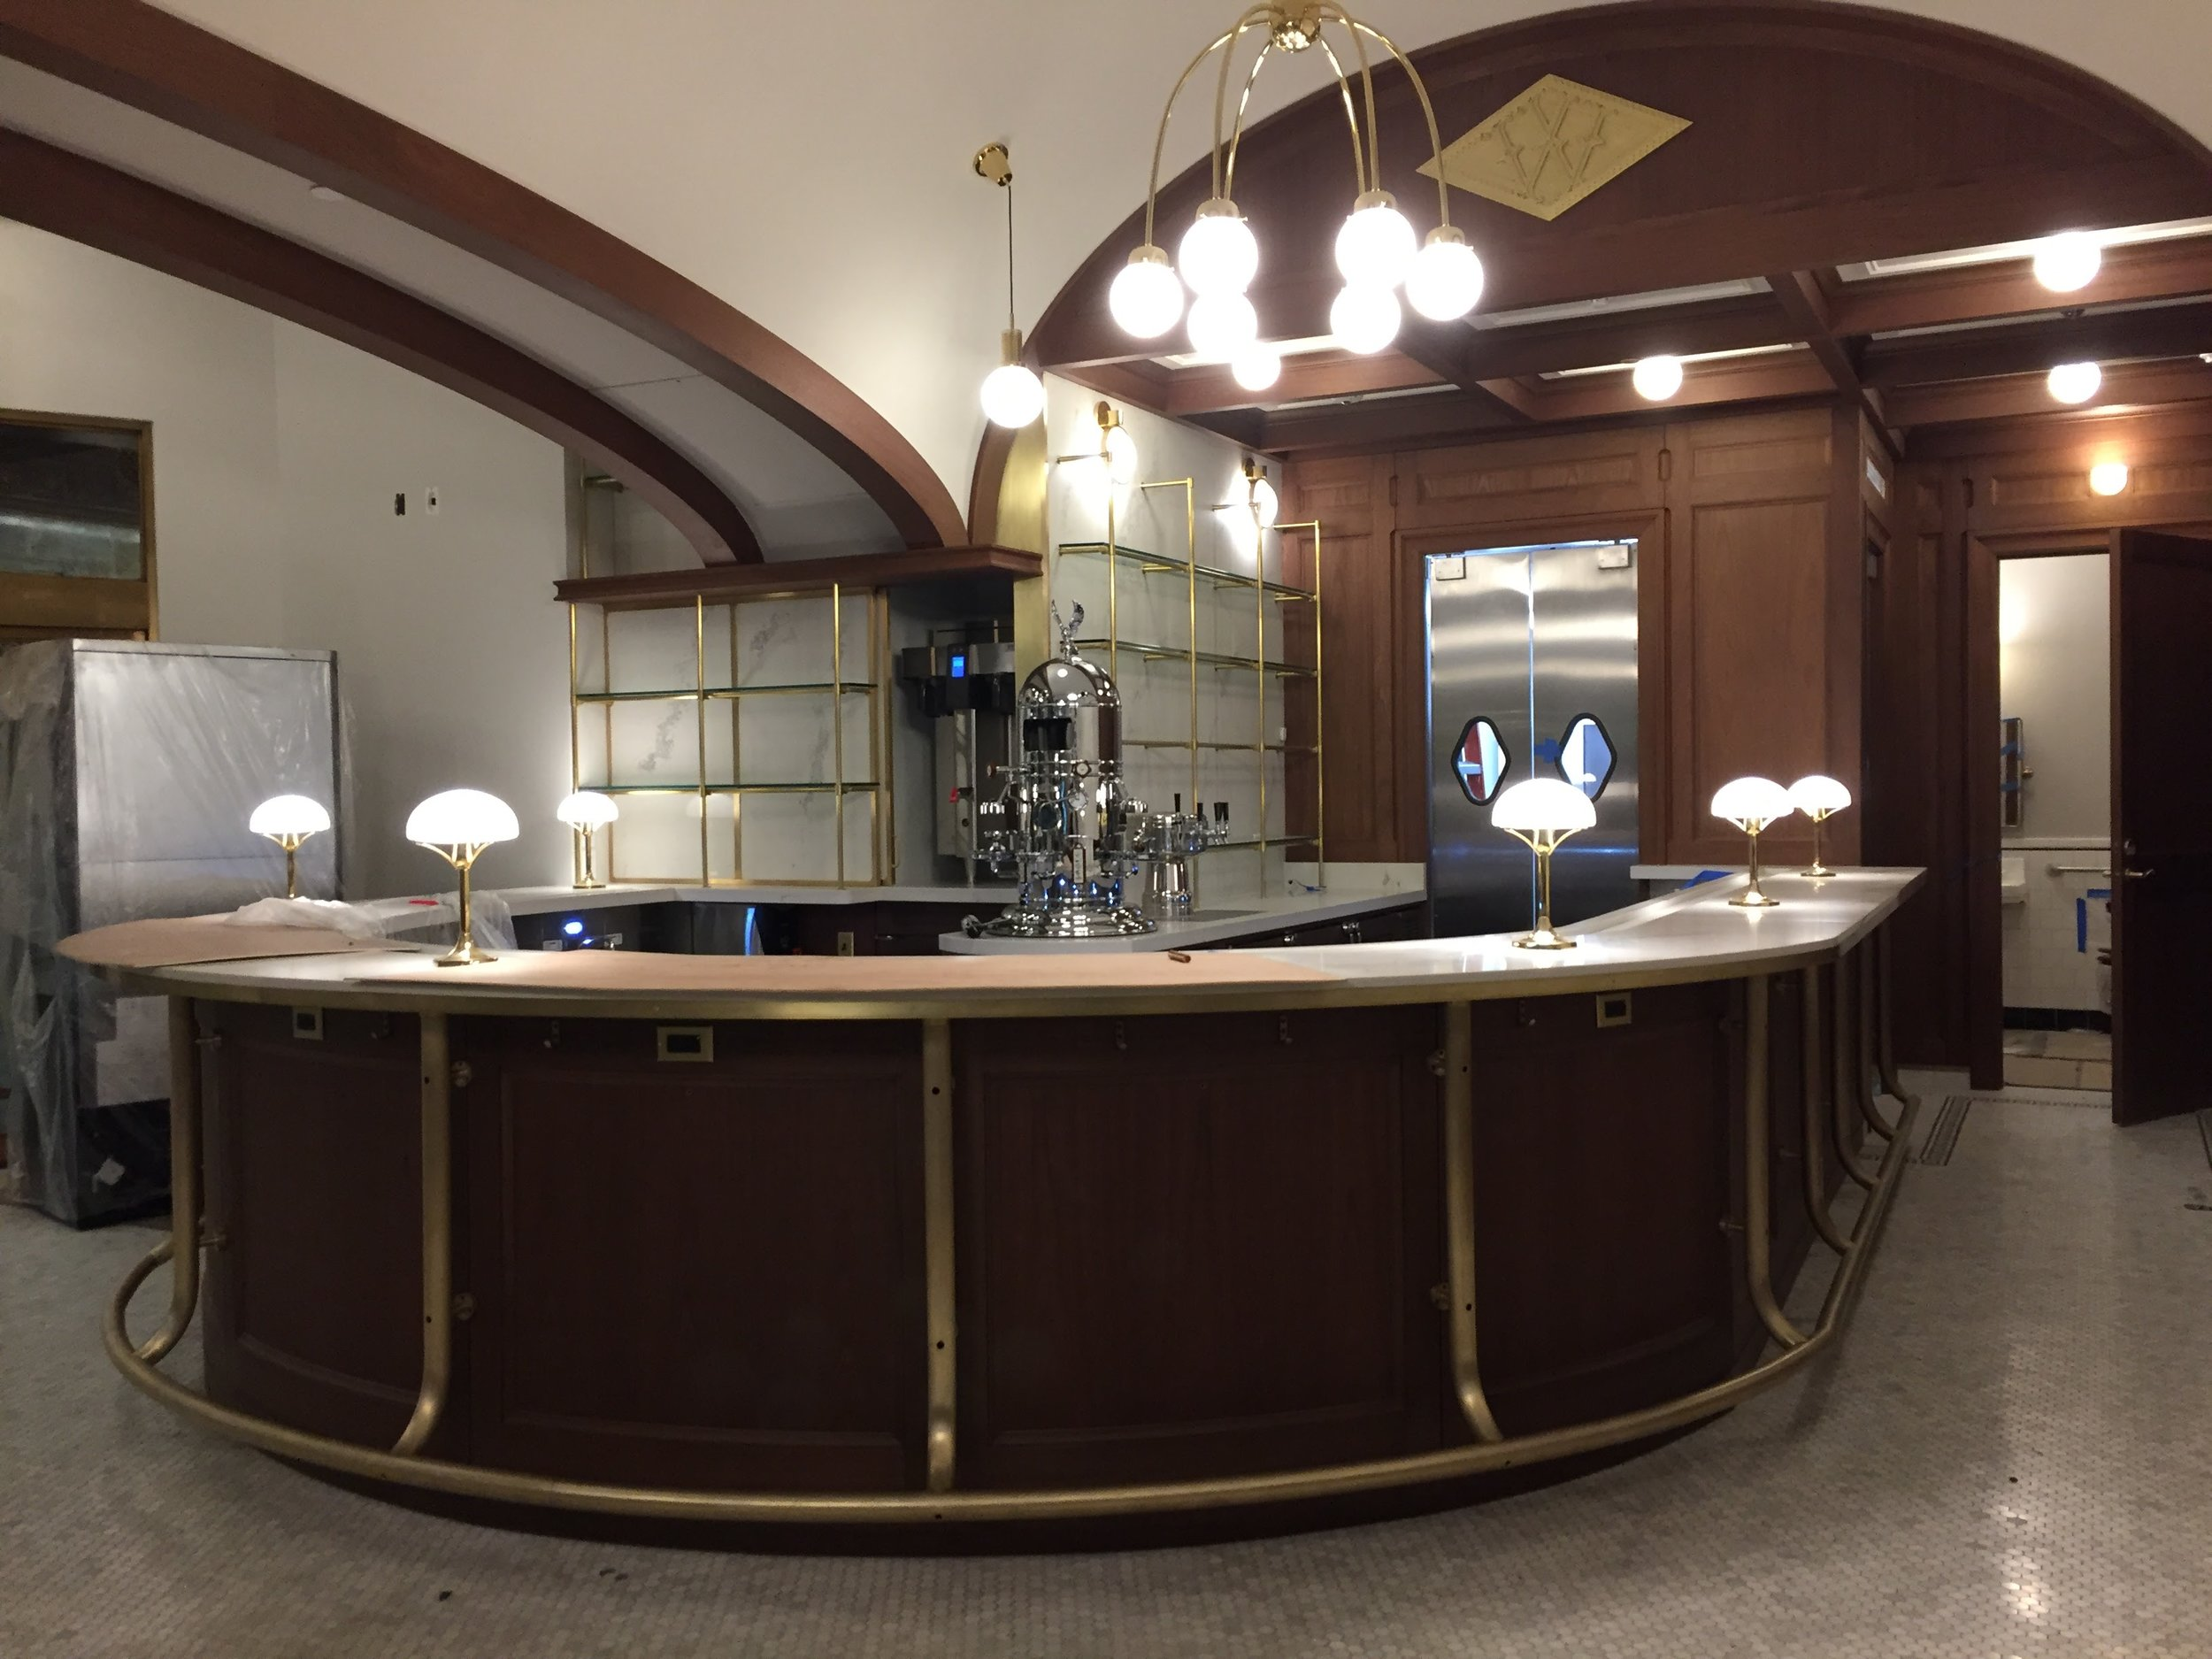 Woolworth.frontbar.naked.JPG